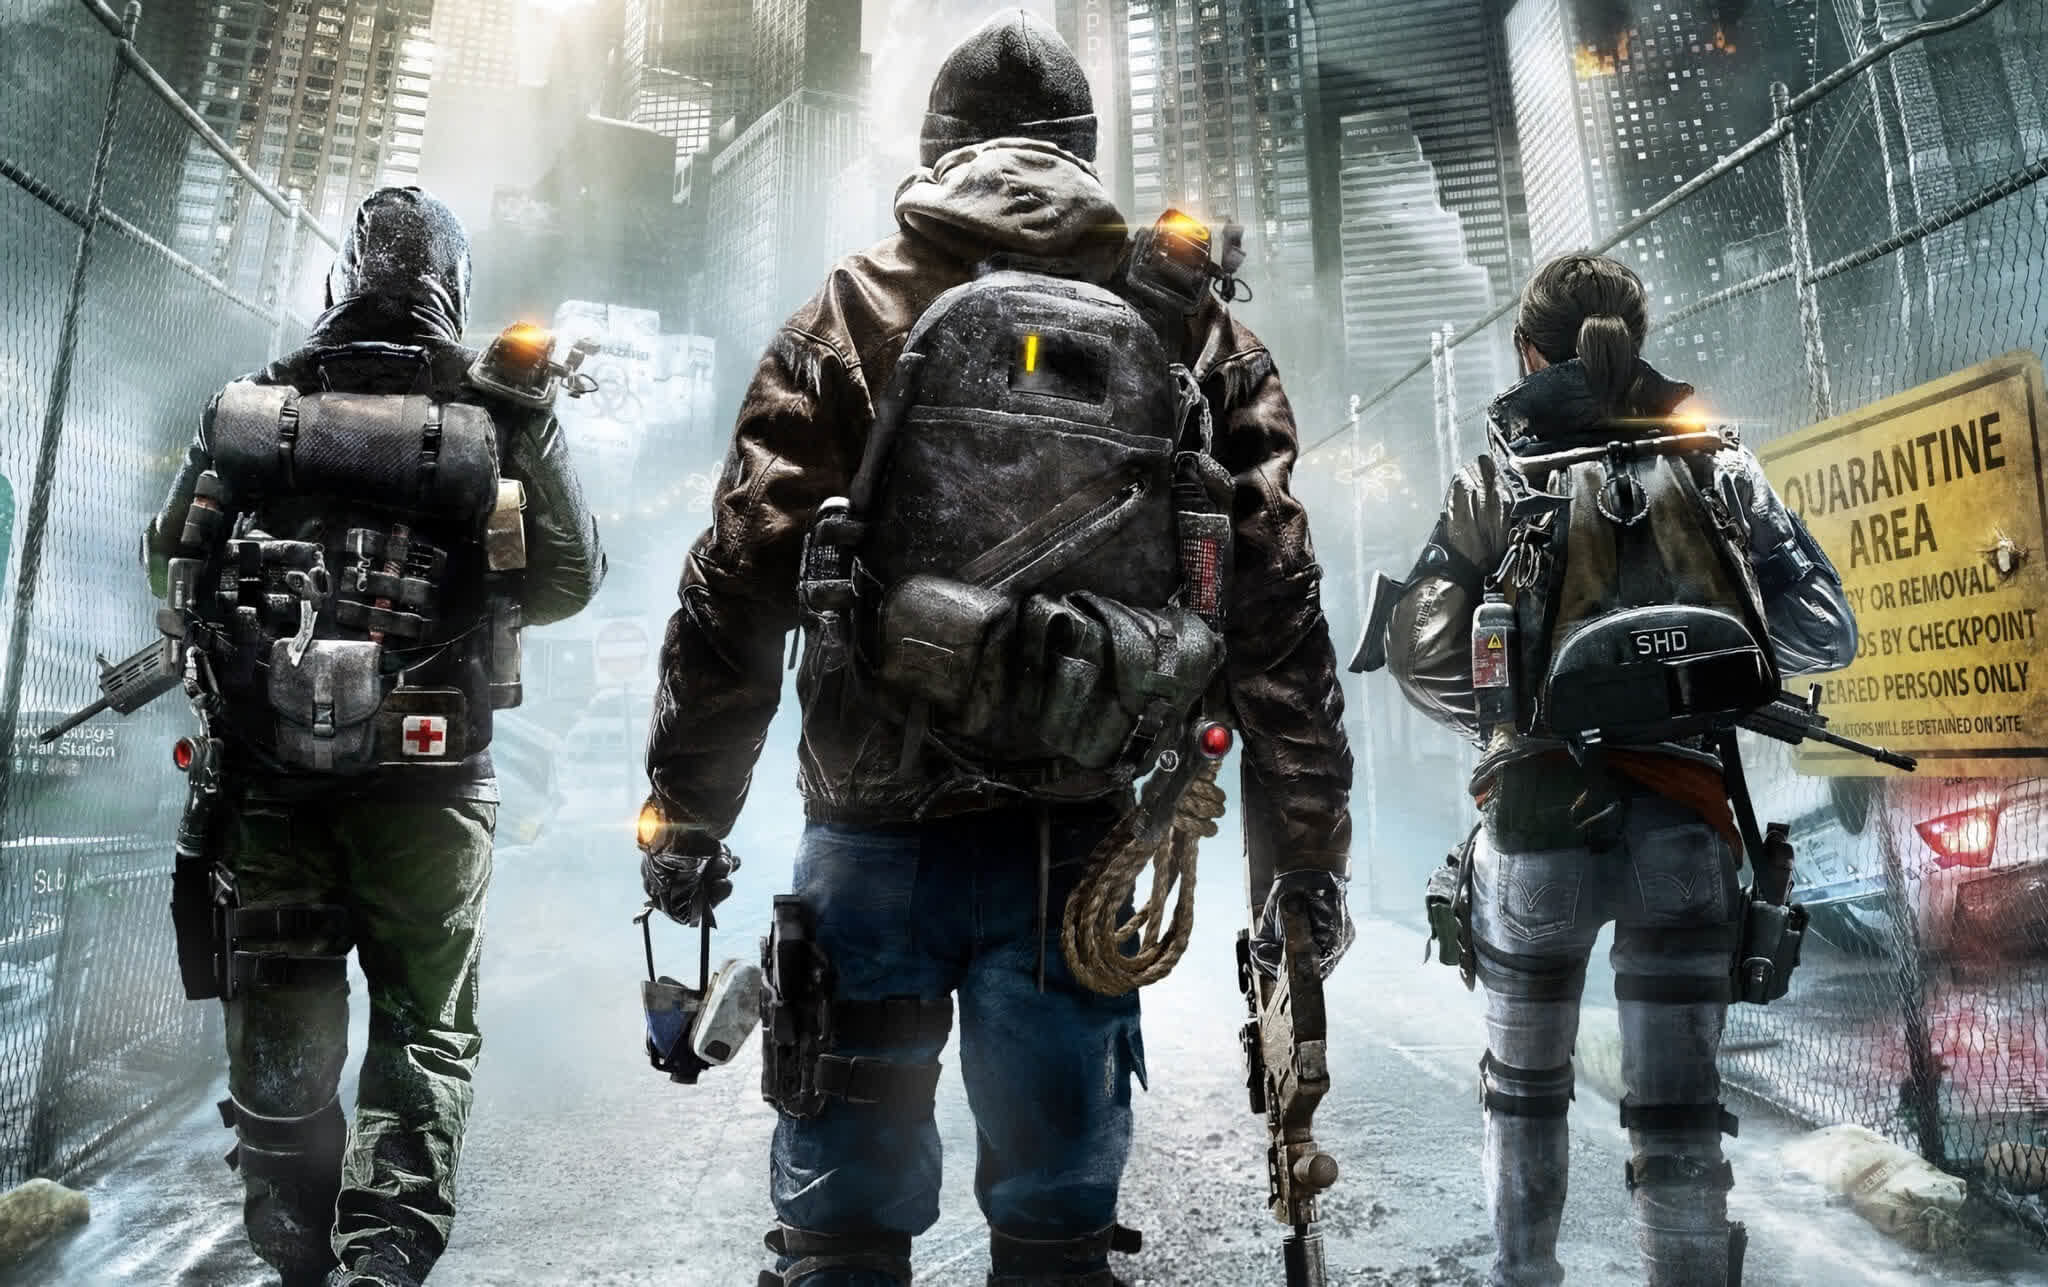 Claim your free copy of Tom Clancy's The Division through September 8